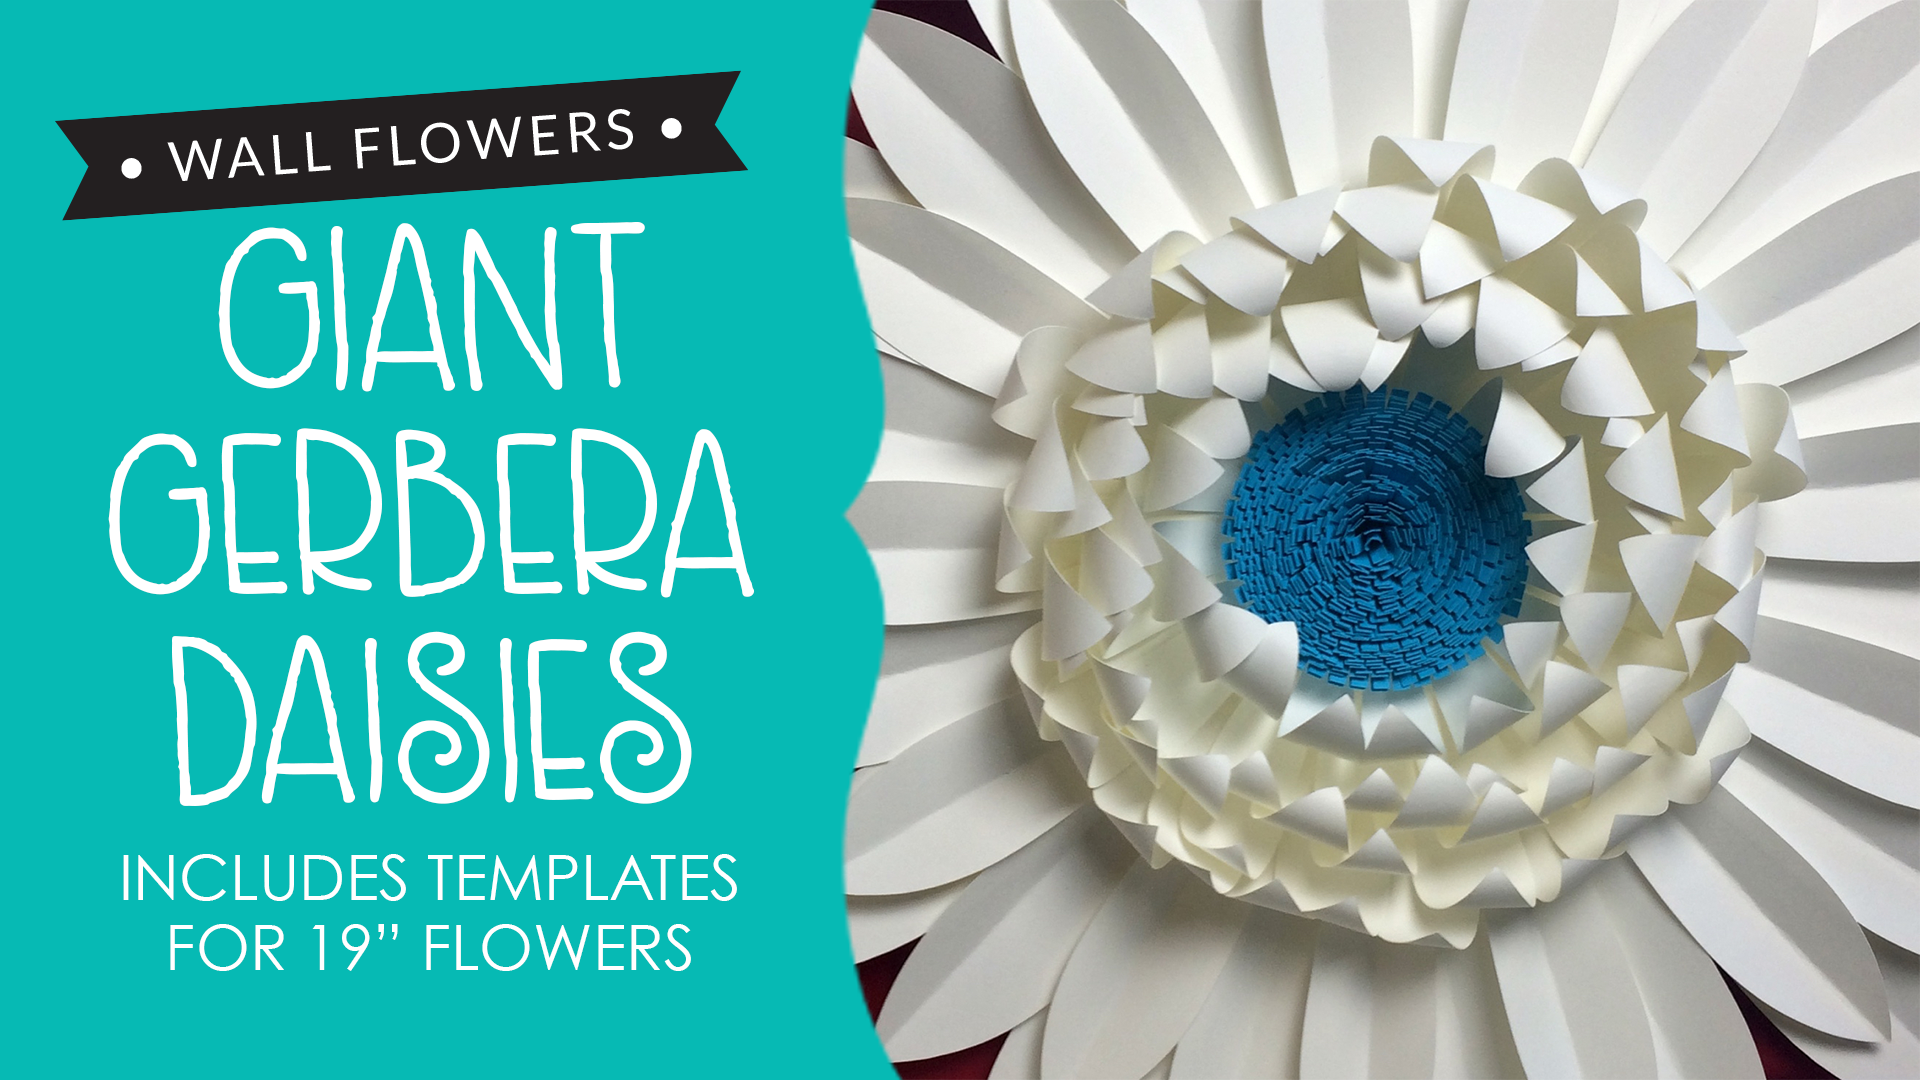 Wall Flowers Giant Gerbera Daisies Includes Templates Heather